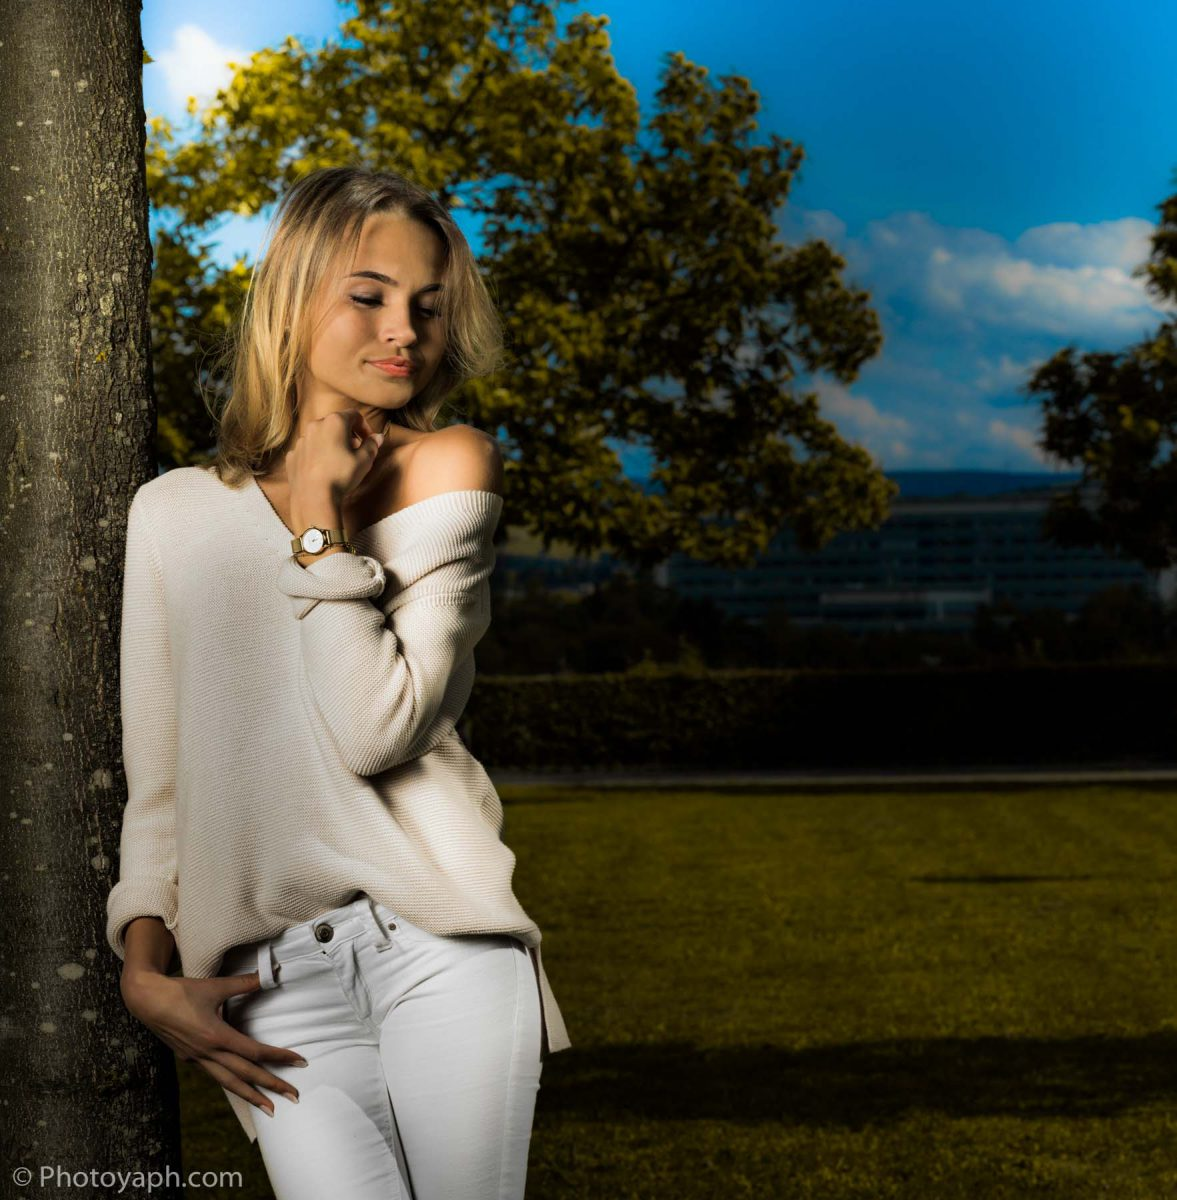 Shooting im Freien Fotostudio Yaph Yousef A. P. Hakimi Photography